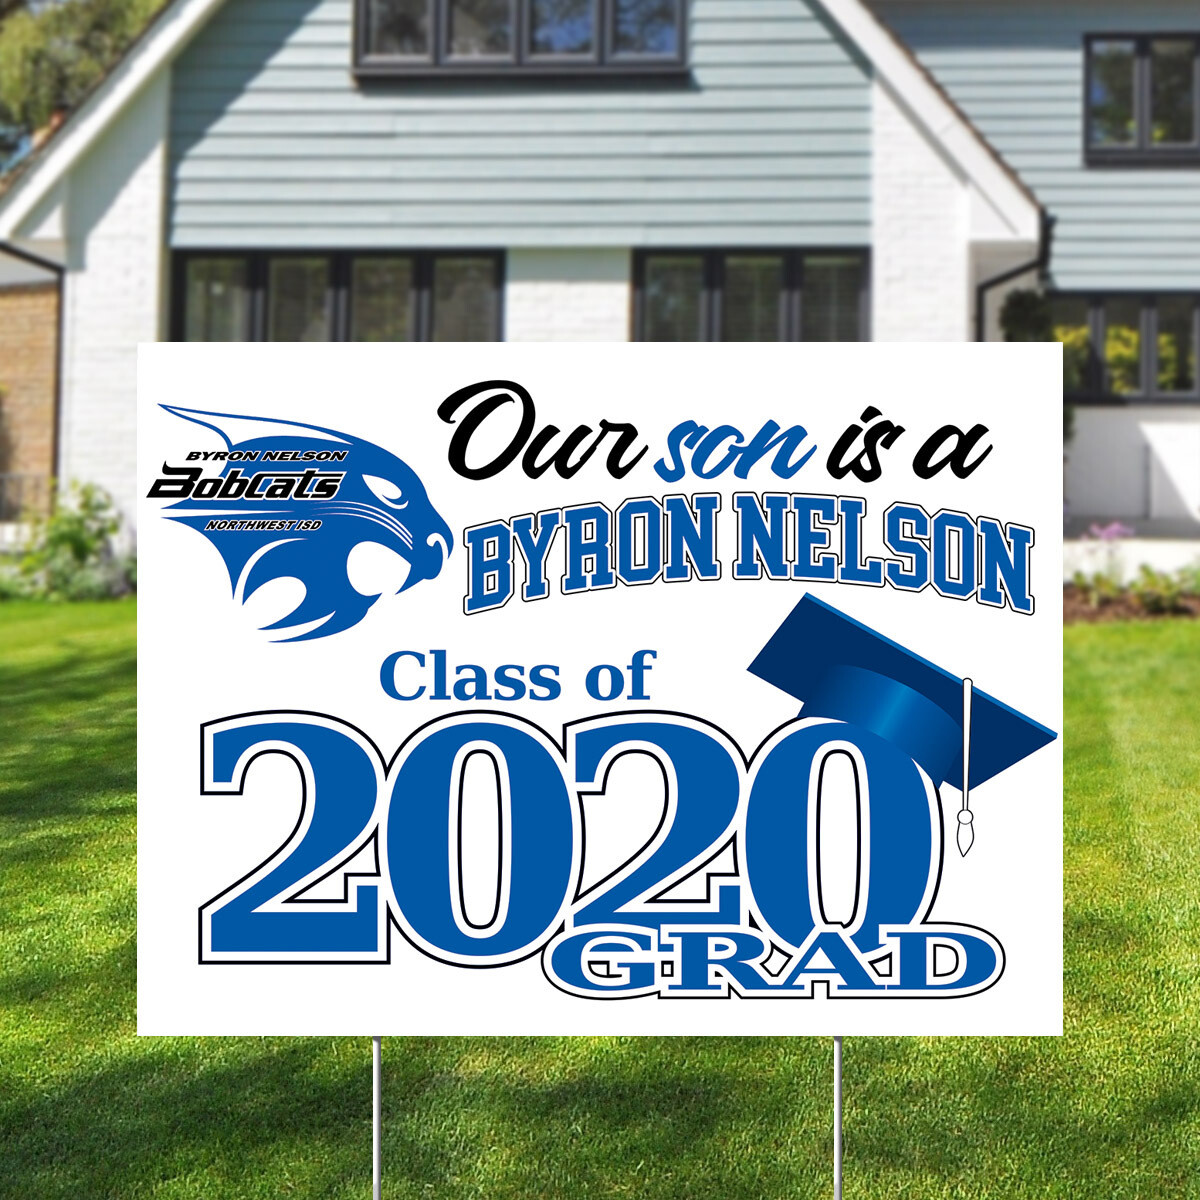 Byron Nelson High School (4 styles)